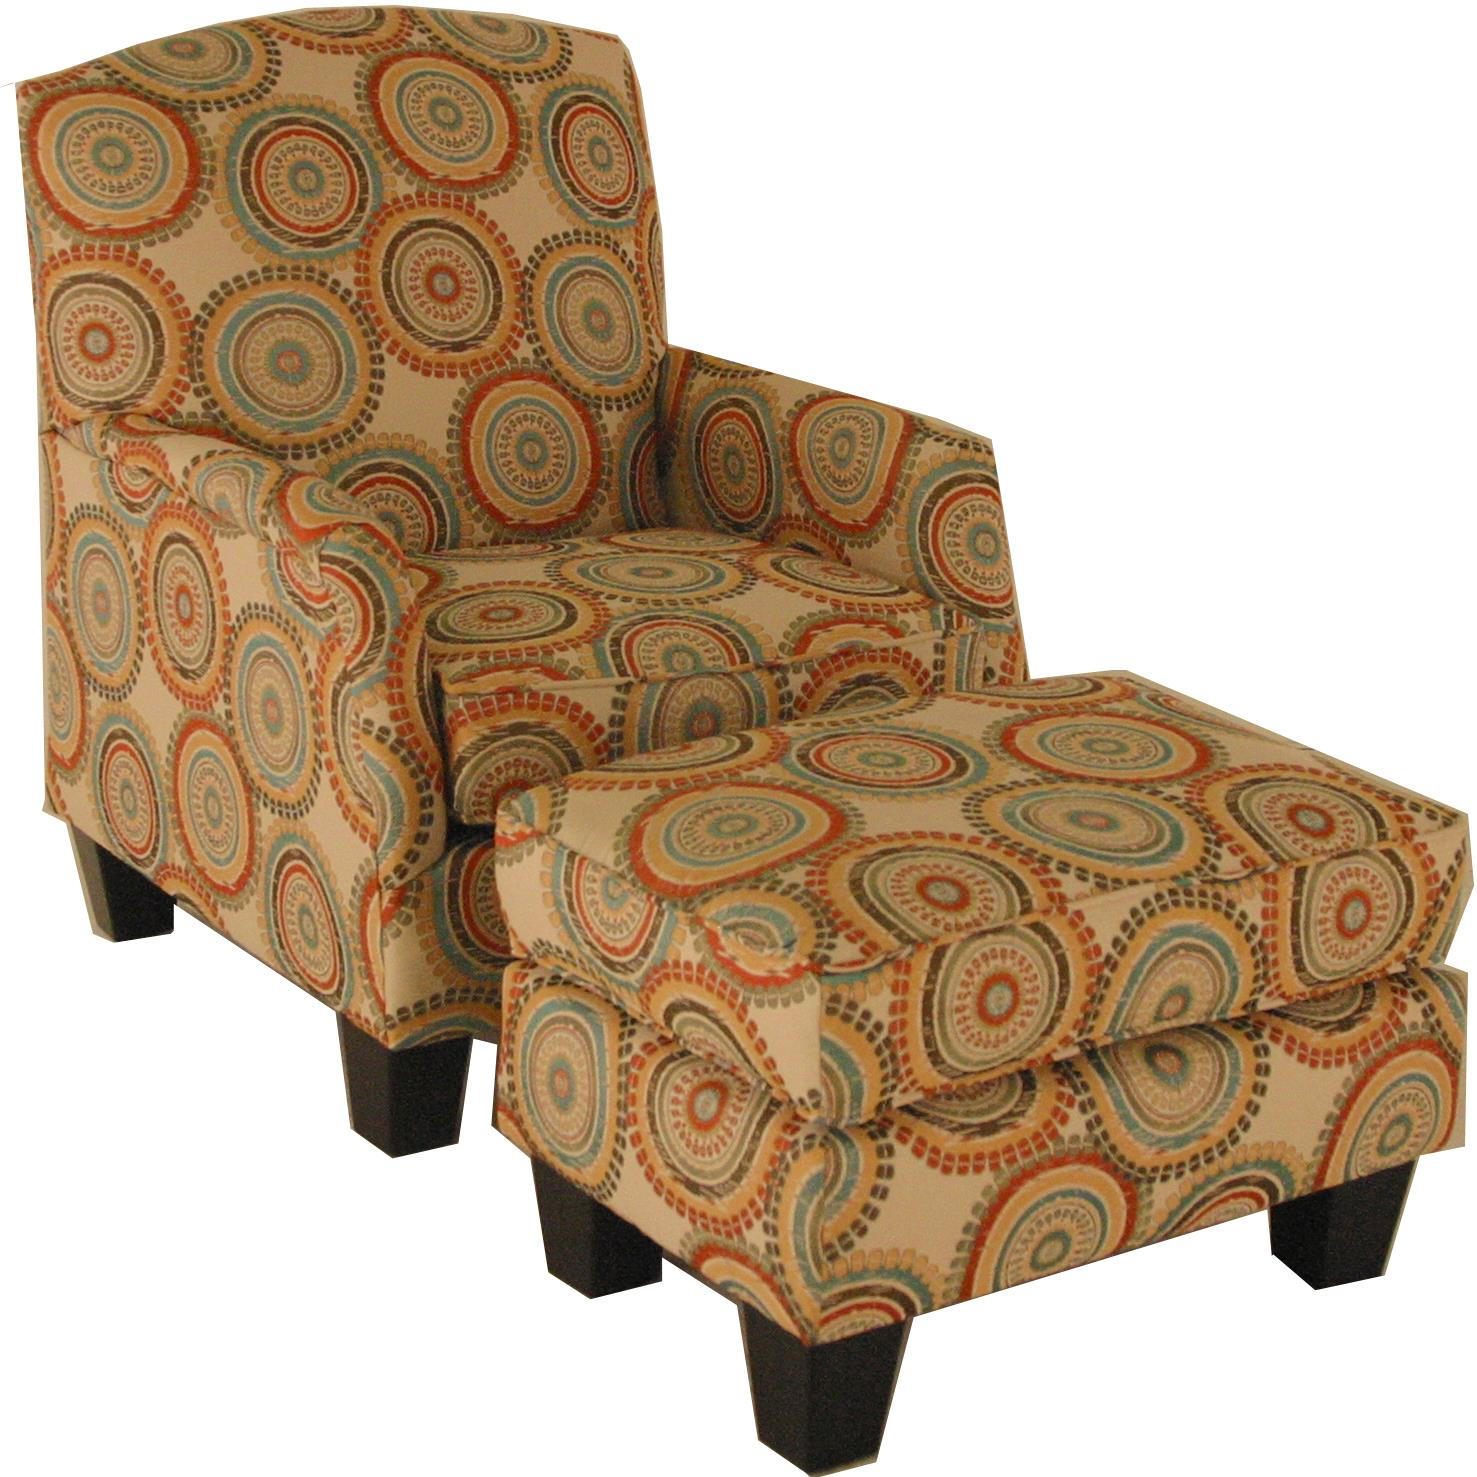 VFM Signature Accent Chairs And Ottomans Transitional Chair And Ottoman Set    Item Number: 1412